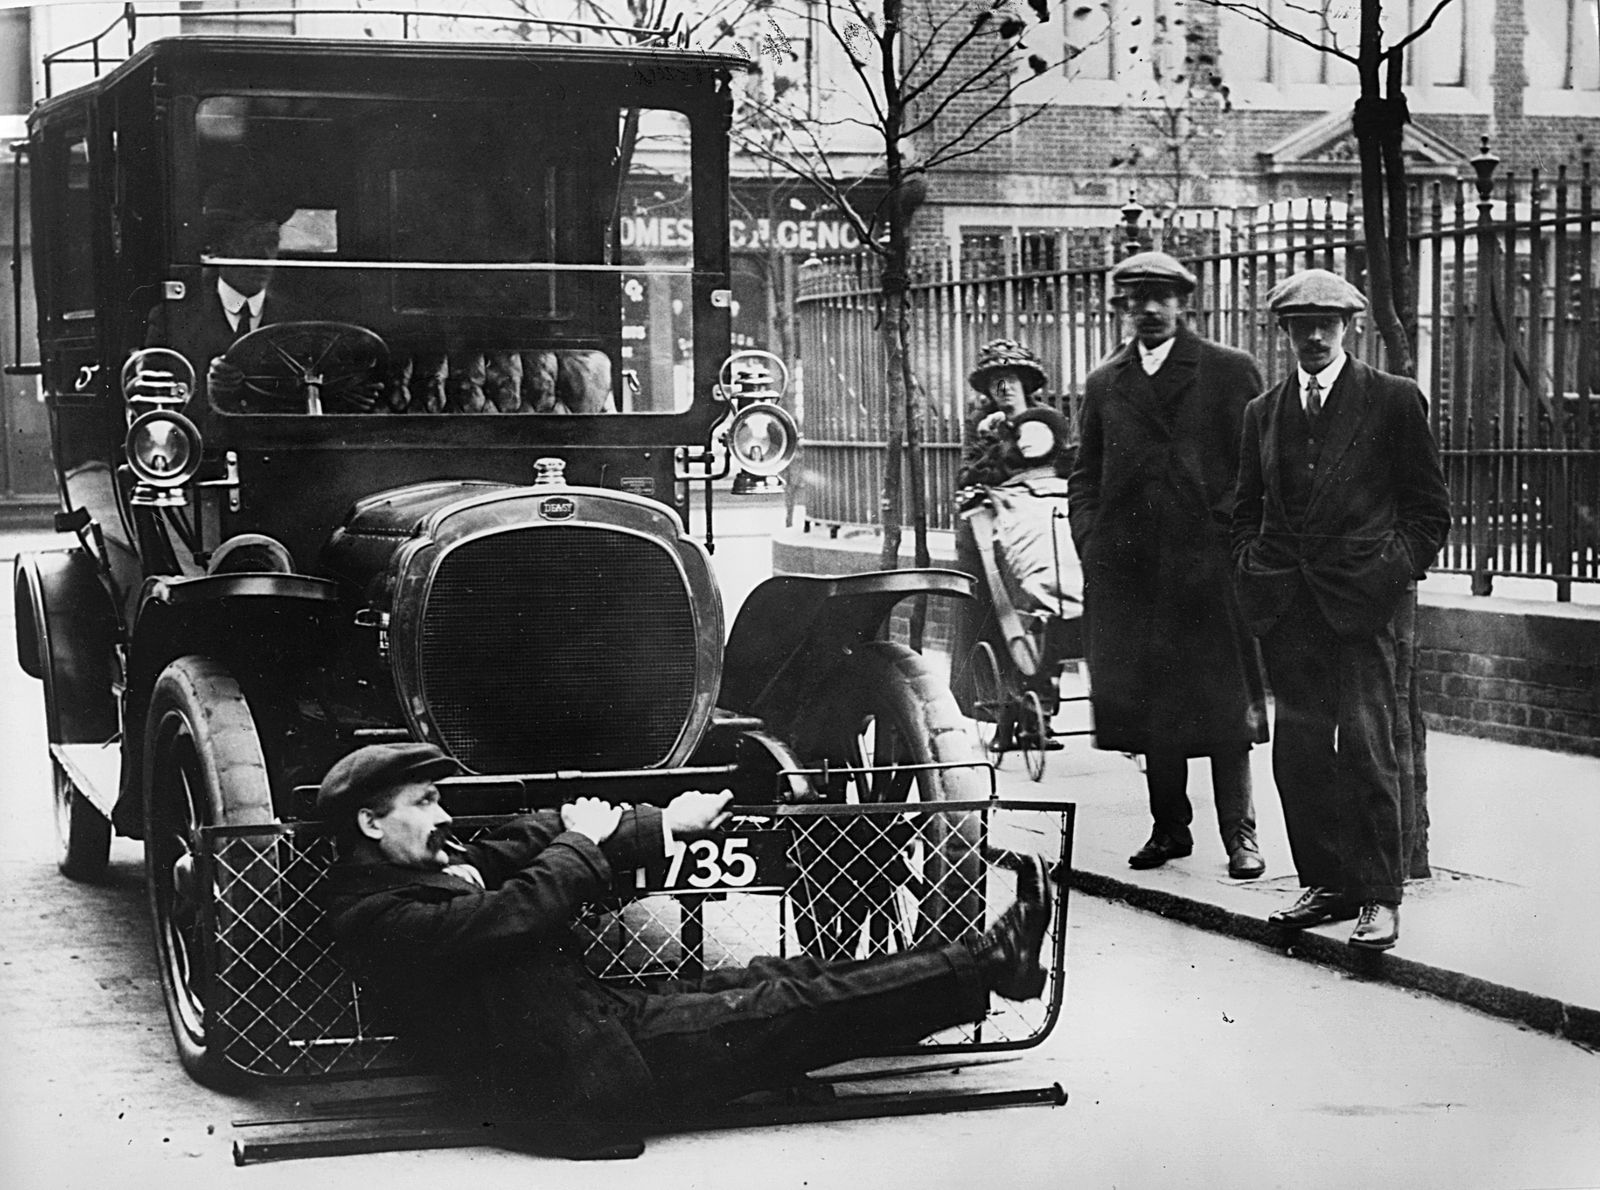 1908 Deasy testing pedestrian road safety device. Creator: Unknown.